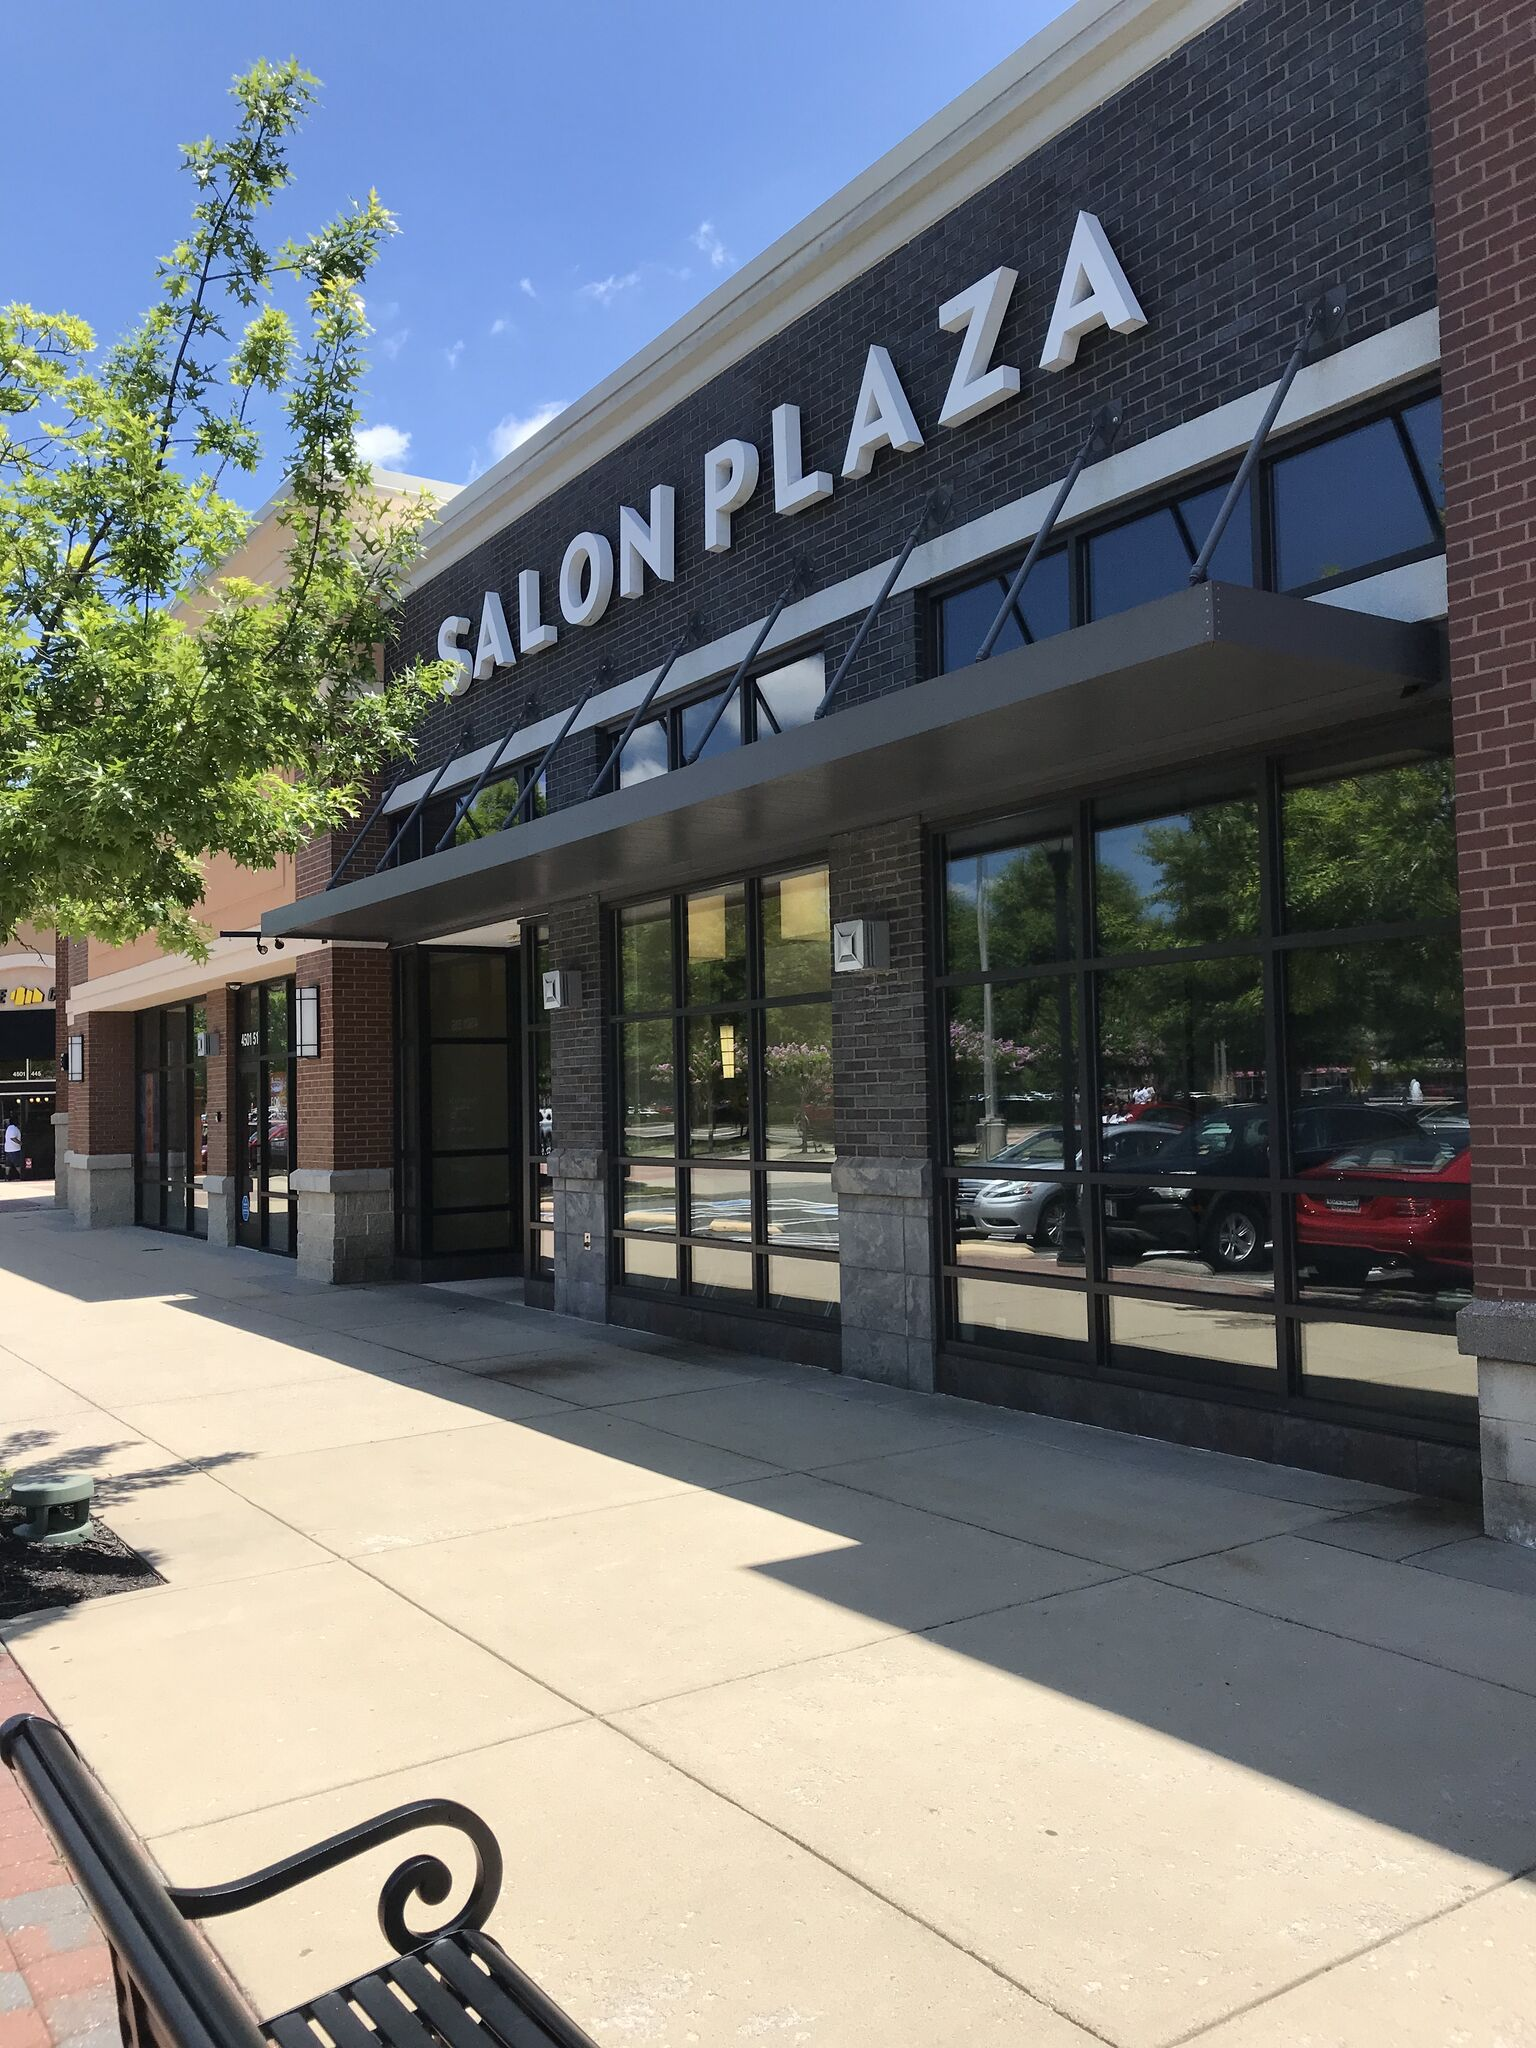 salon-plaza-white-oak-village.jpg